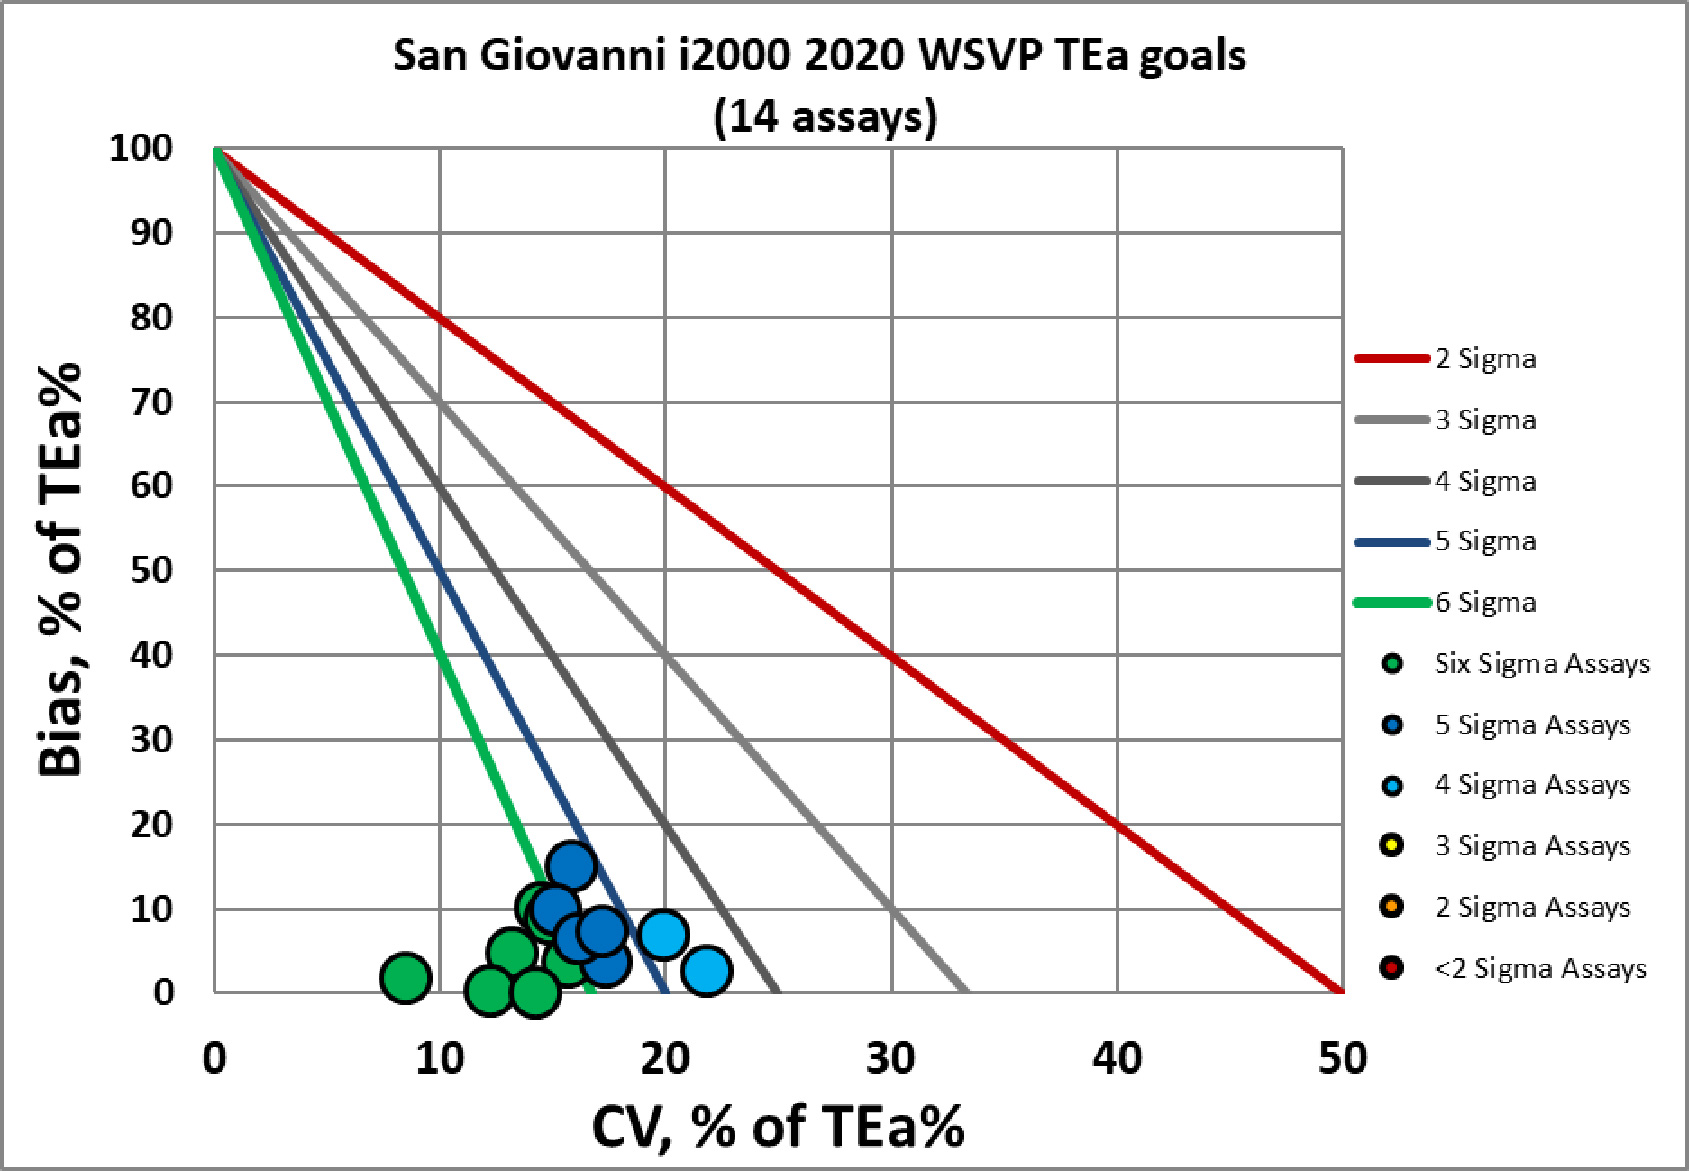 Sigma VP Verification 2020 San Giovanni 3 10x17